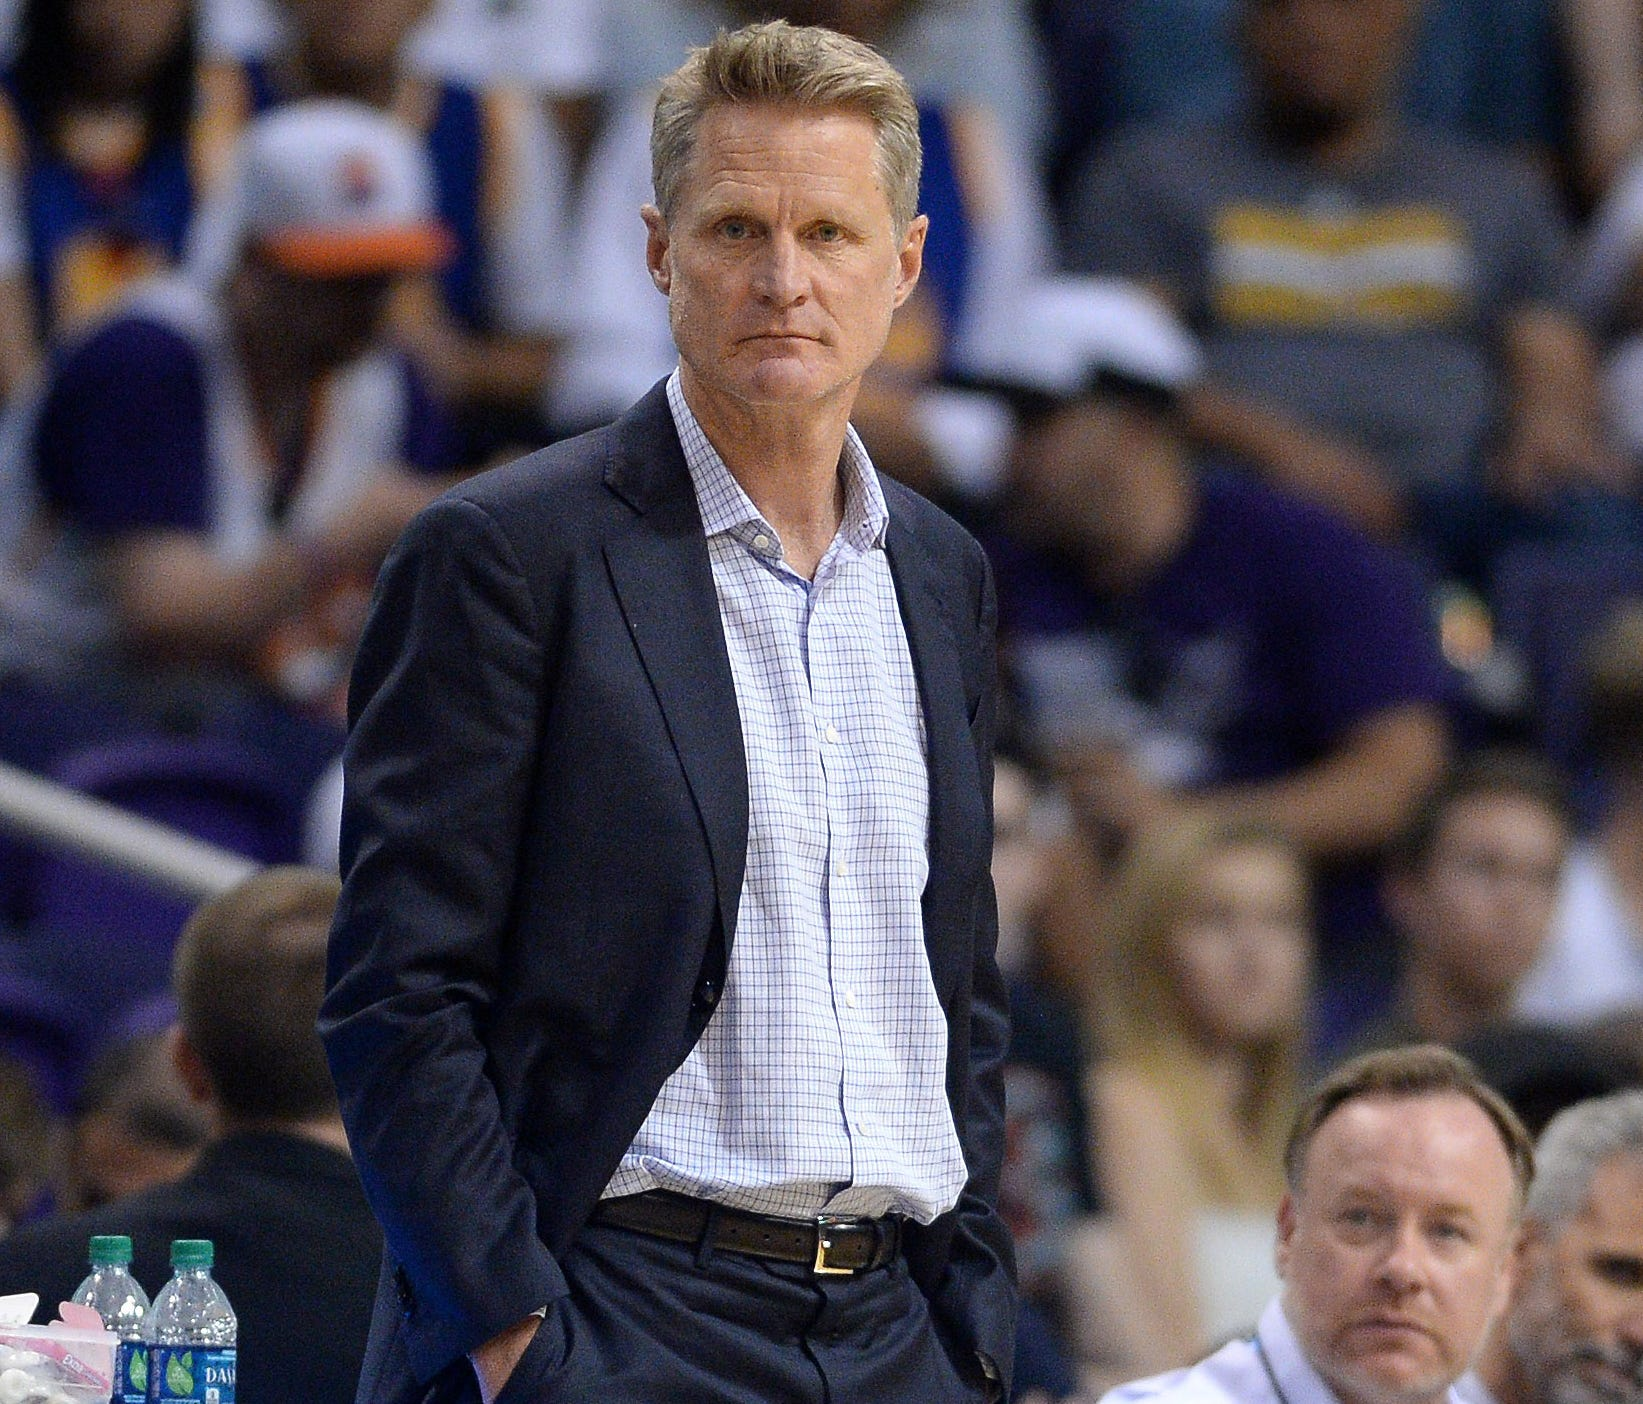 Golden State Warriors head coach Steve Kerr (left) looks on during the second half against the Phoenix Suns at Talking Stick Resort Arena.